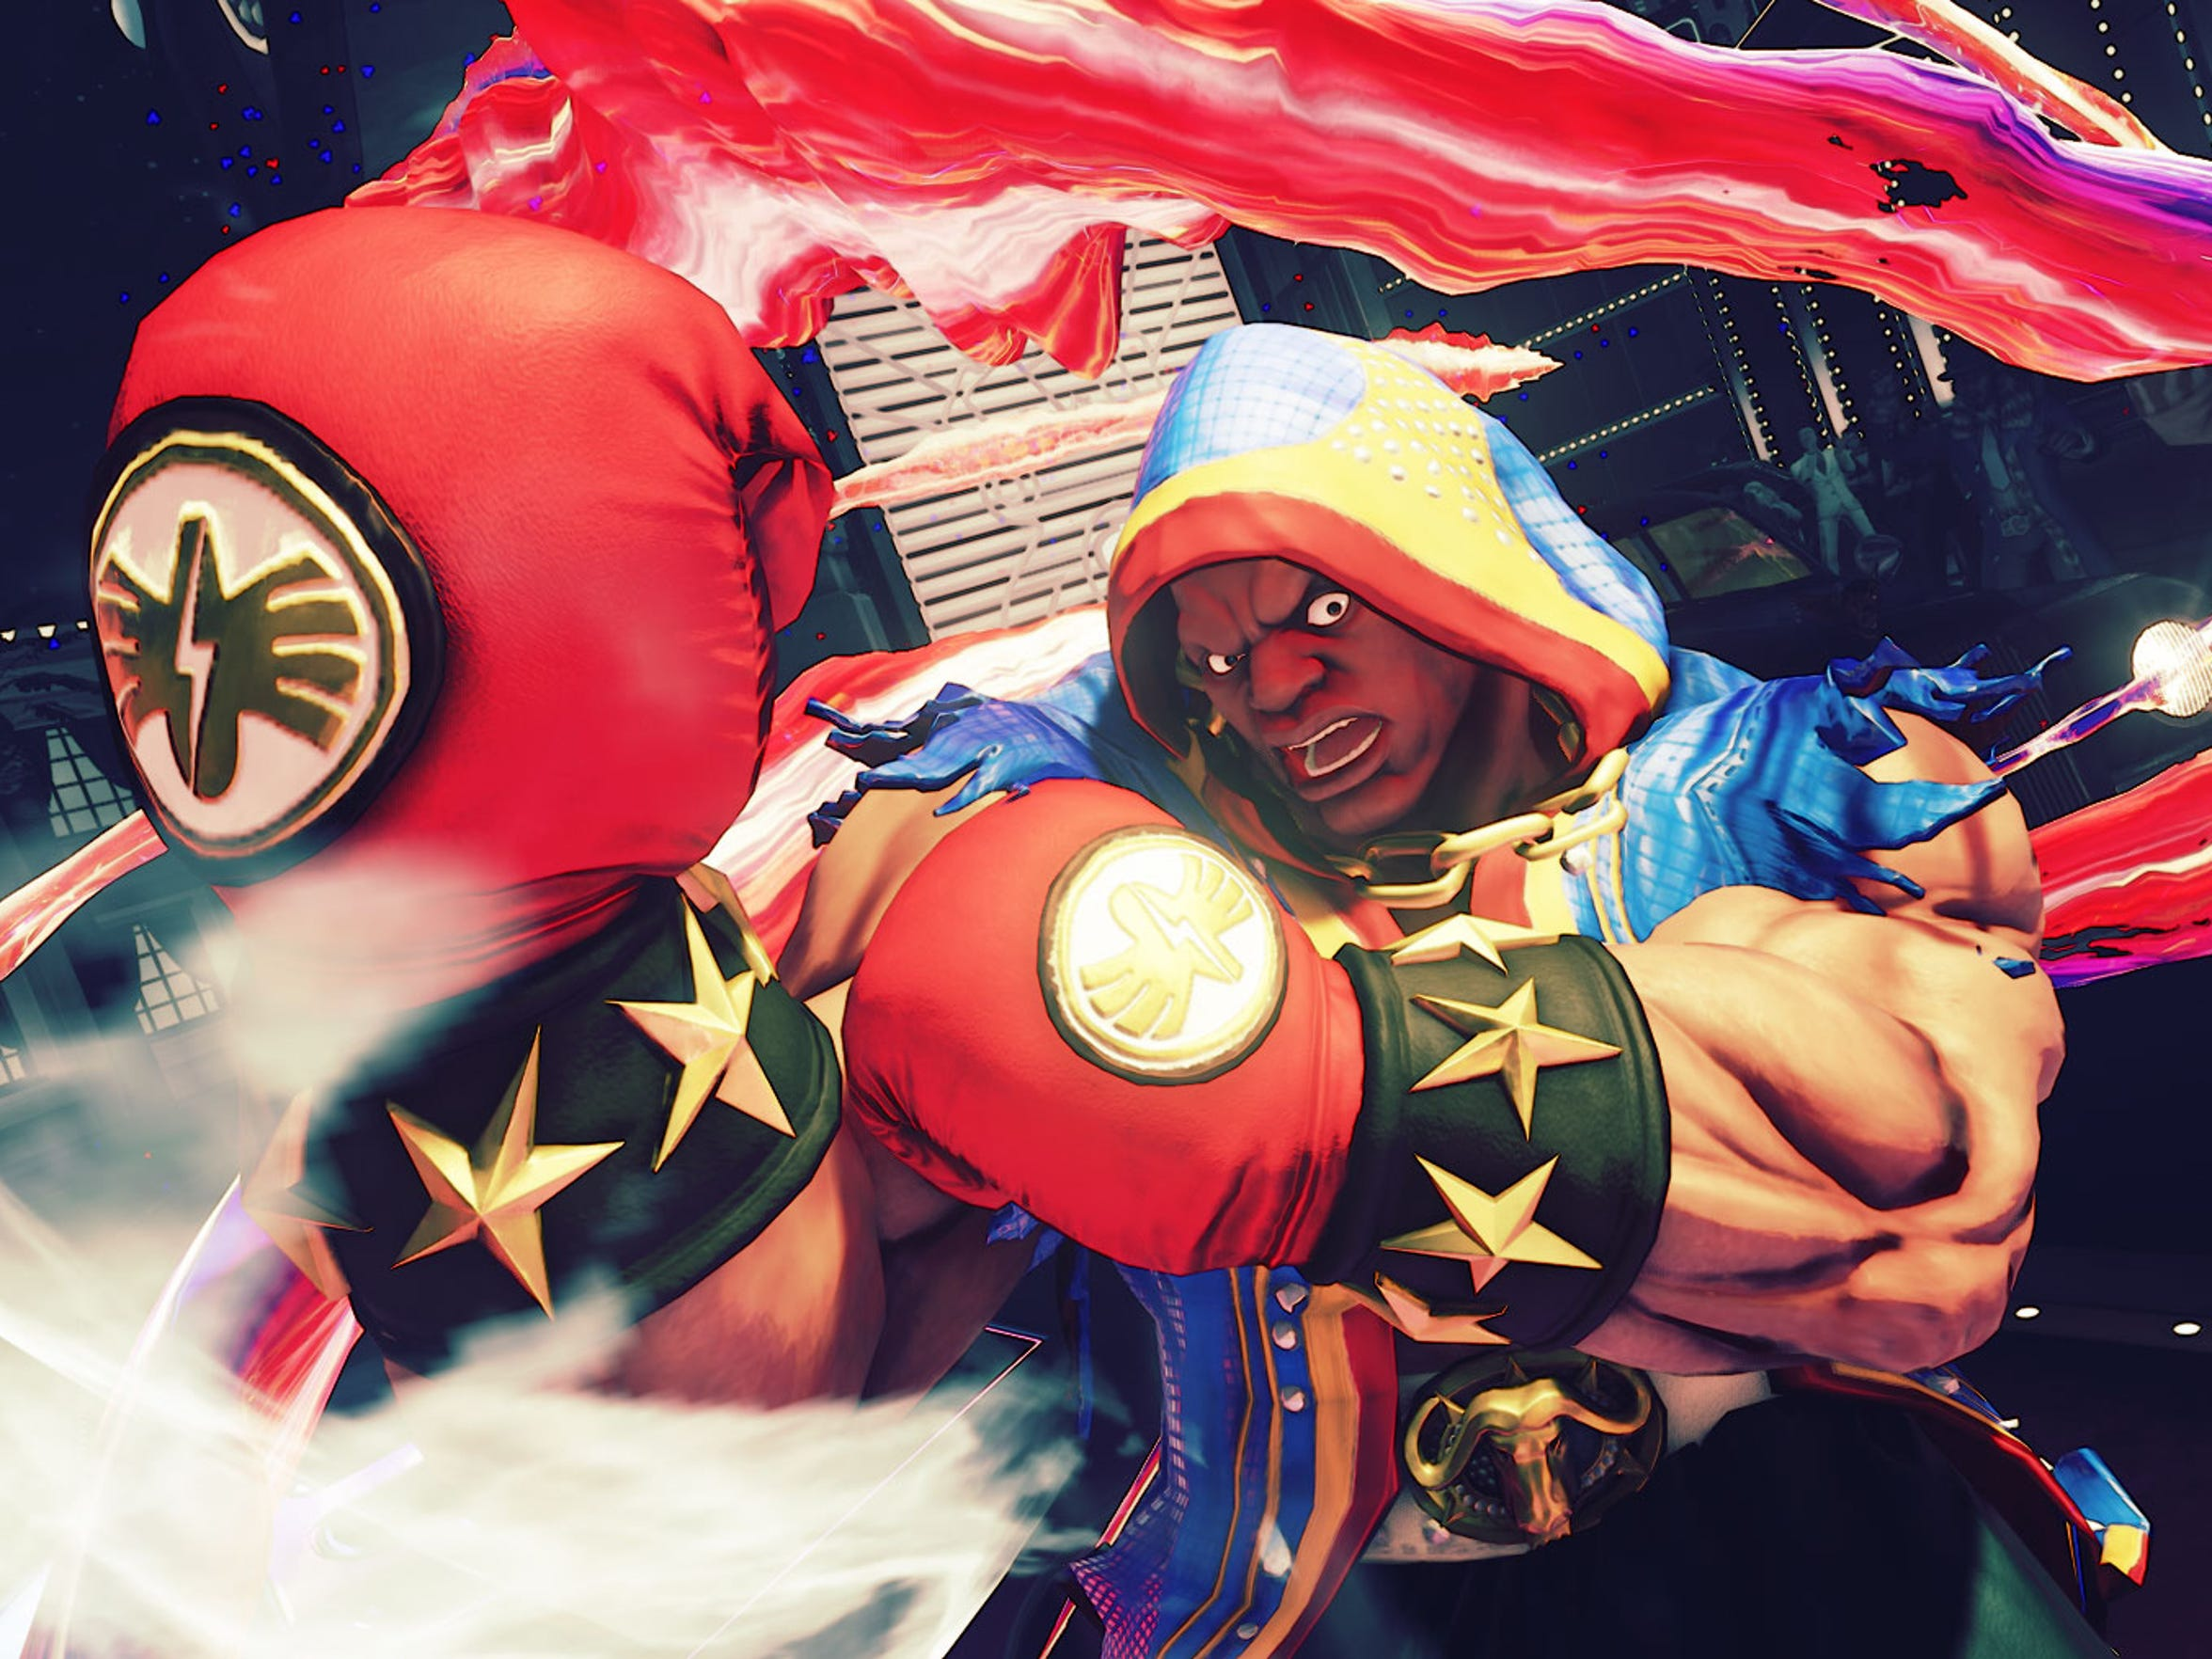 Mike Bison, er, Balrog returns to the fray in Street